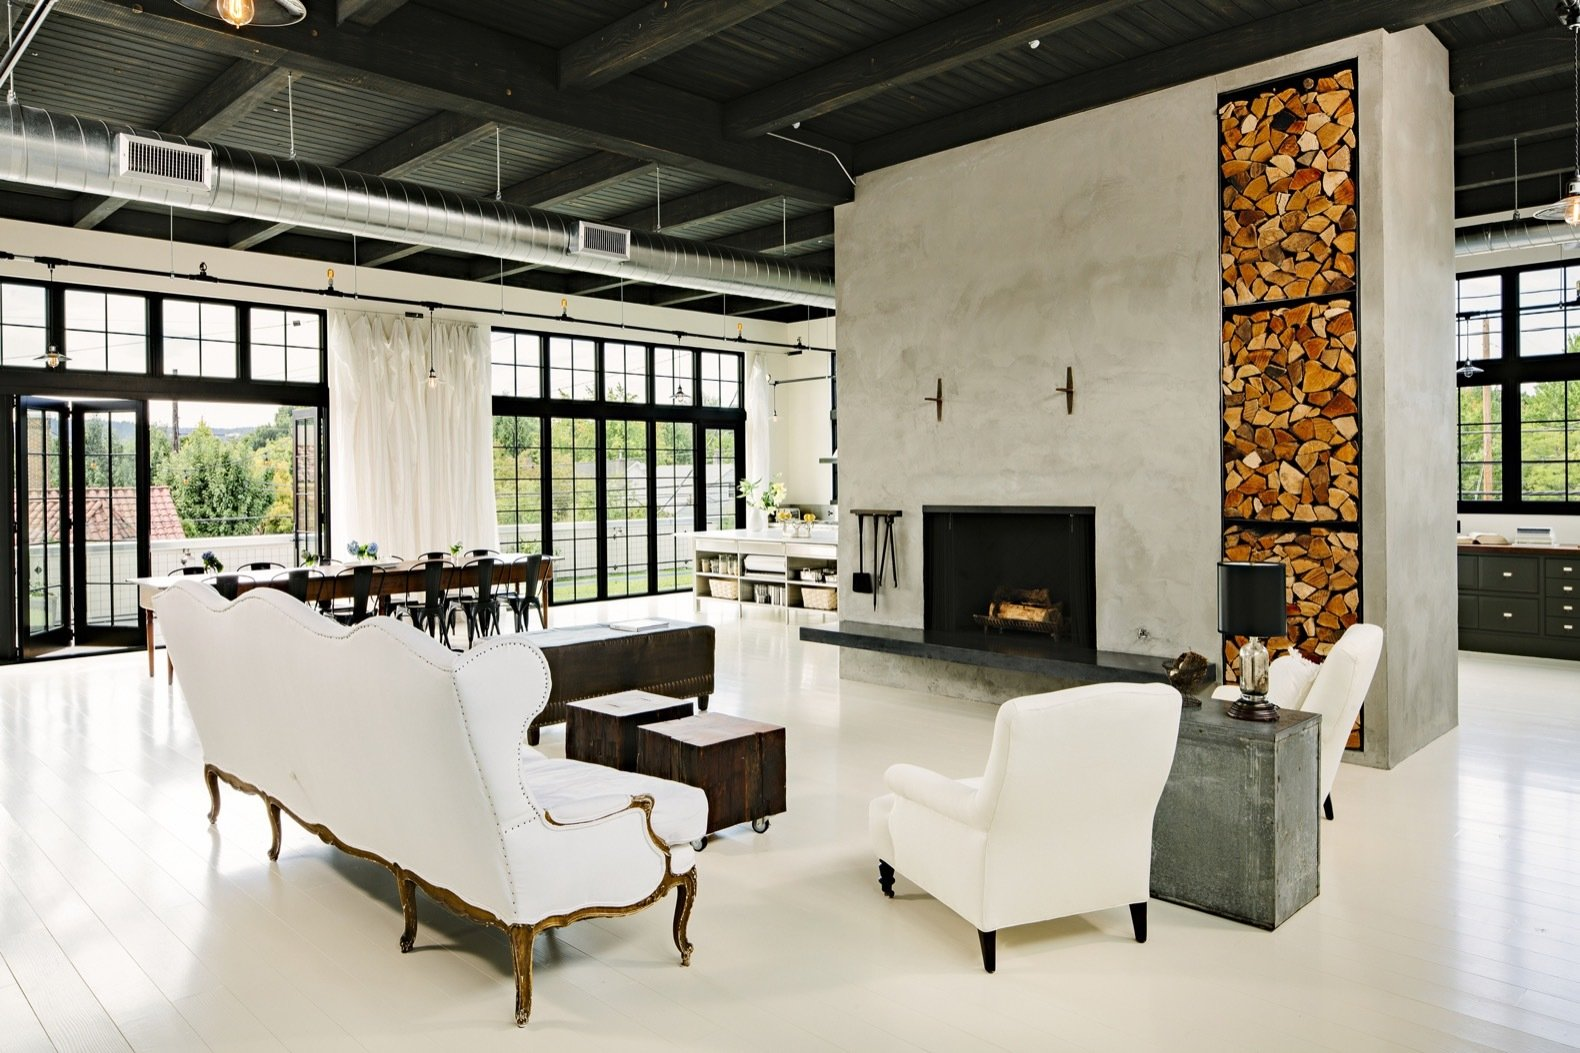 A 1920s Portland Warehouse Is Rehabbed Into an Industrial-Chic Home